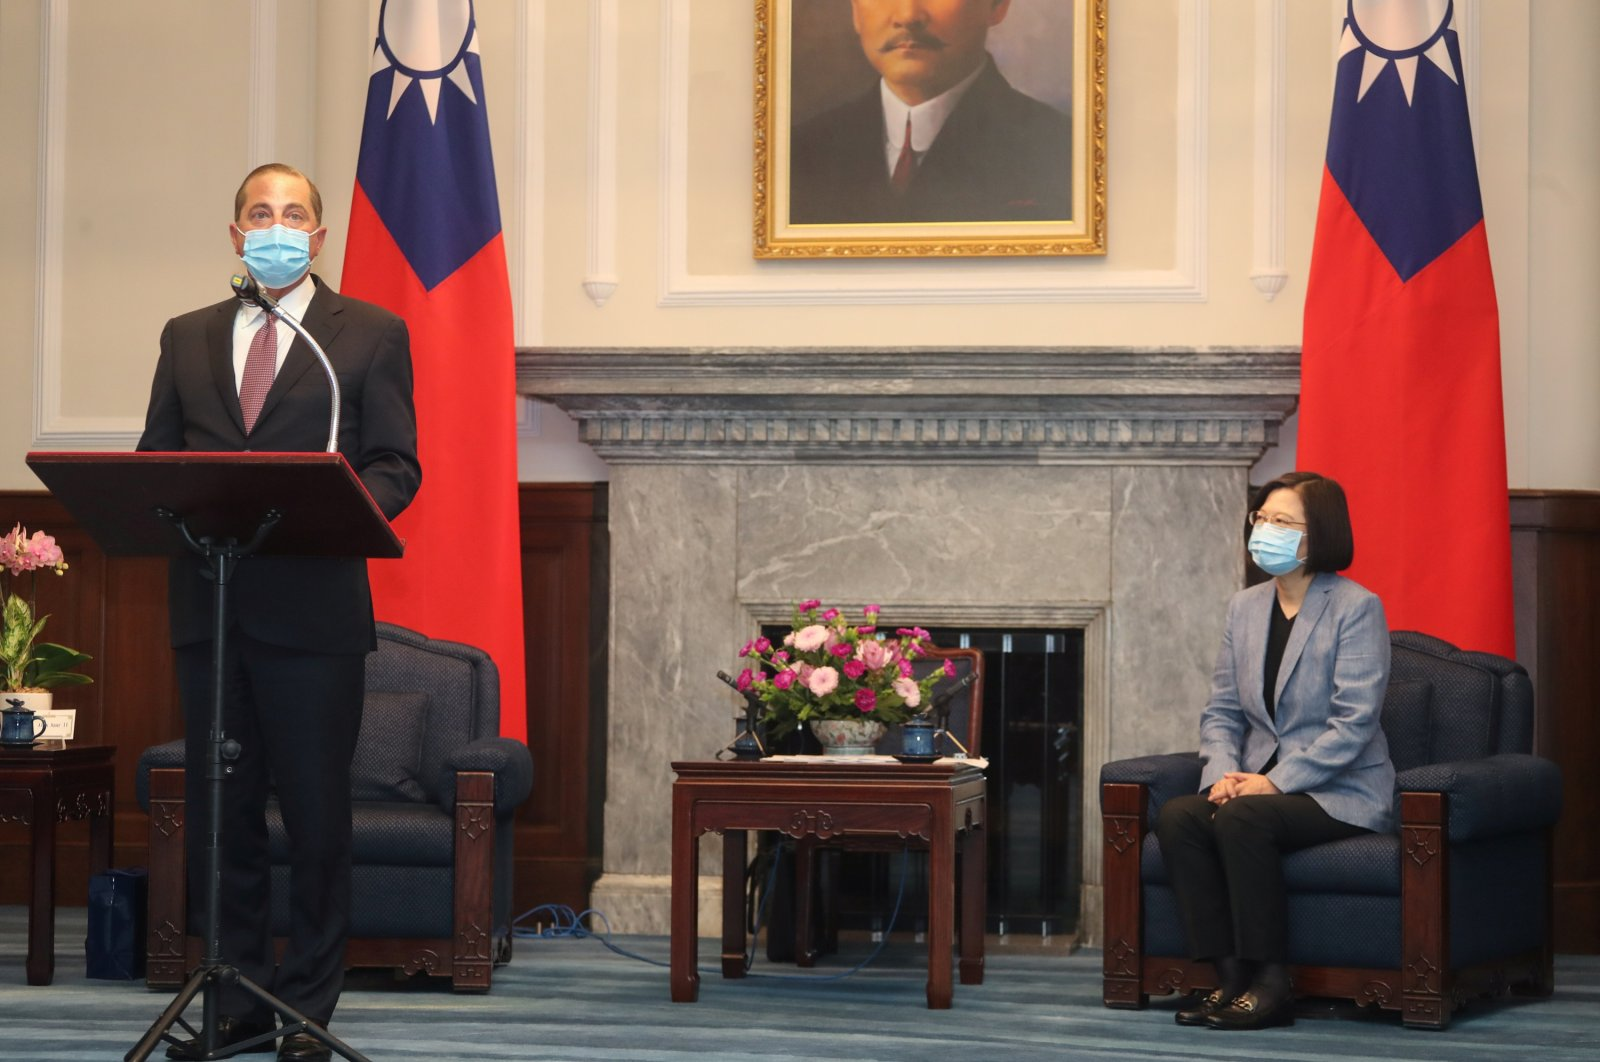 U.S. Secretary of Health and Human Services Alex Azar (L) attends a meeting with Taiwan President Tsai Ing-wen at the presidential office in Taipei, Taiwan, Aug. 10, 2020. (Reuters Photo)